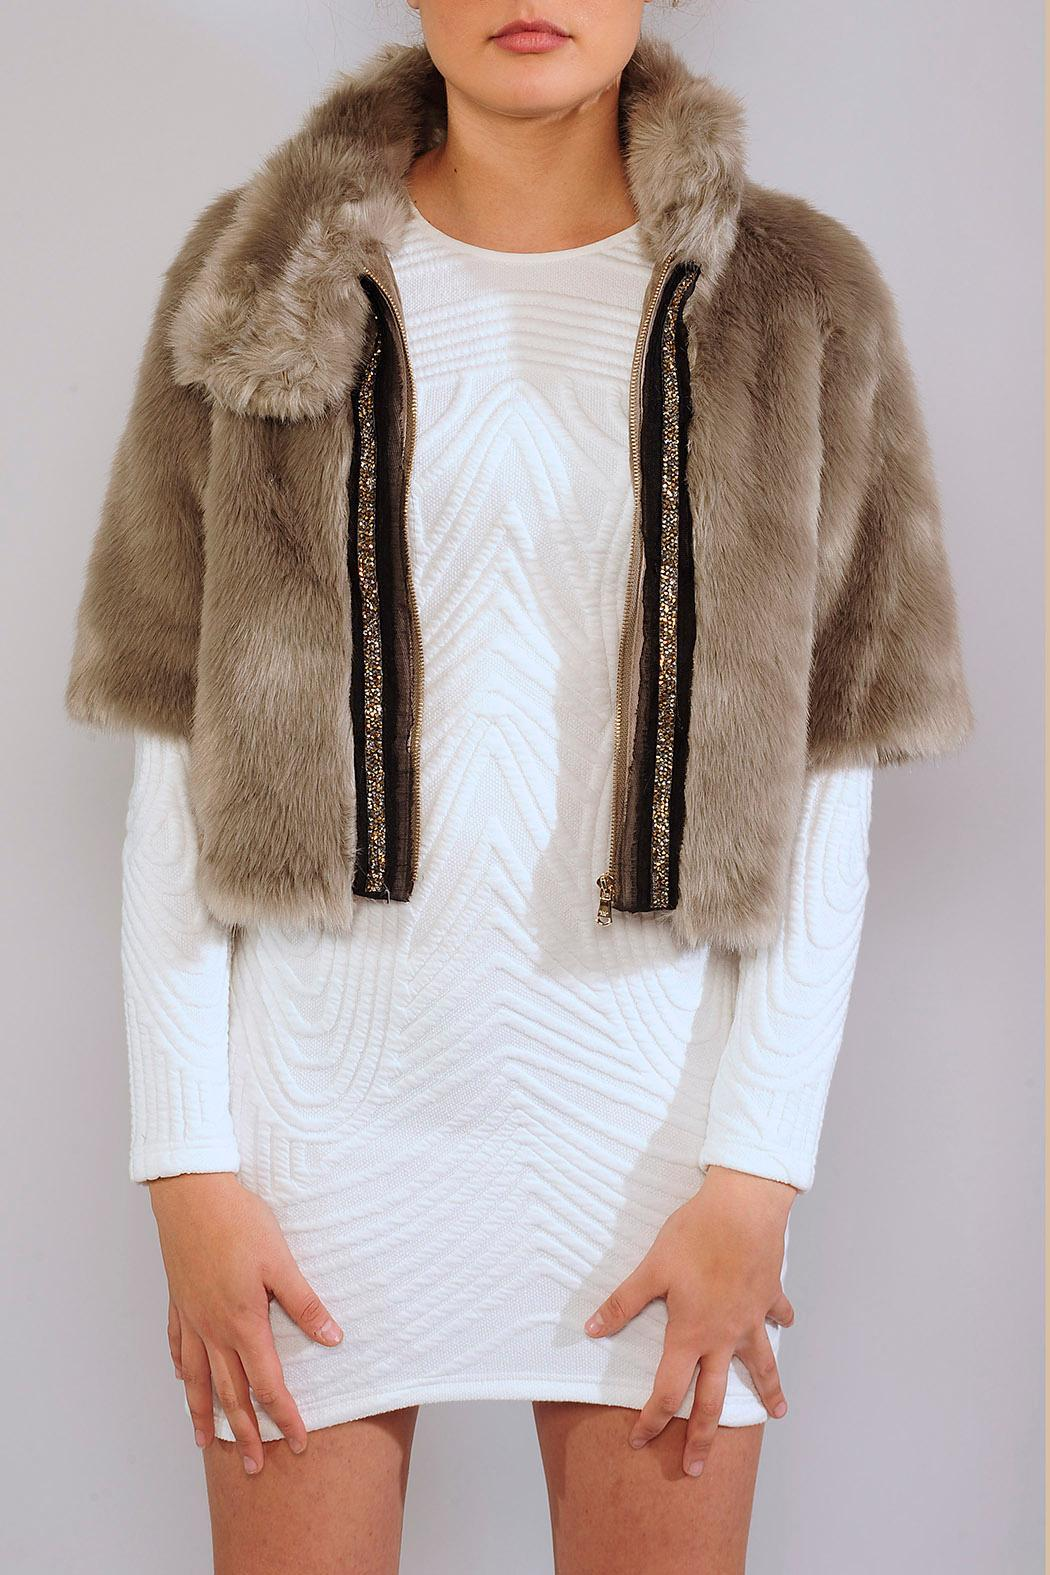 5f20805487 Patrizia Pepe Faux Fur Jacket from Hammersmith and Fulham by Kyra ...